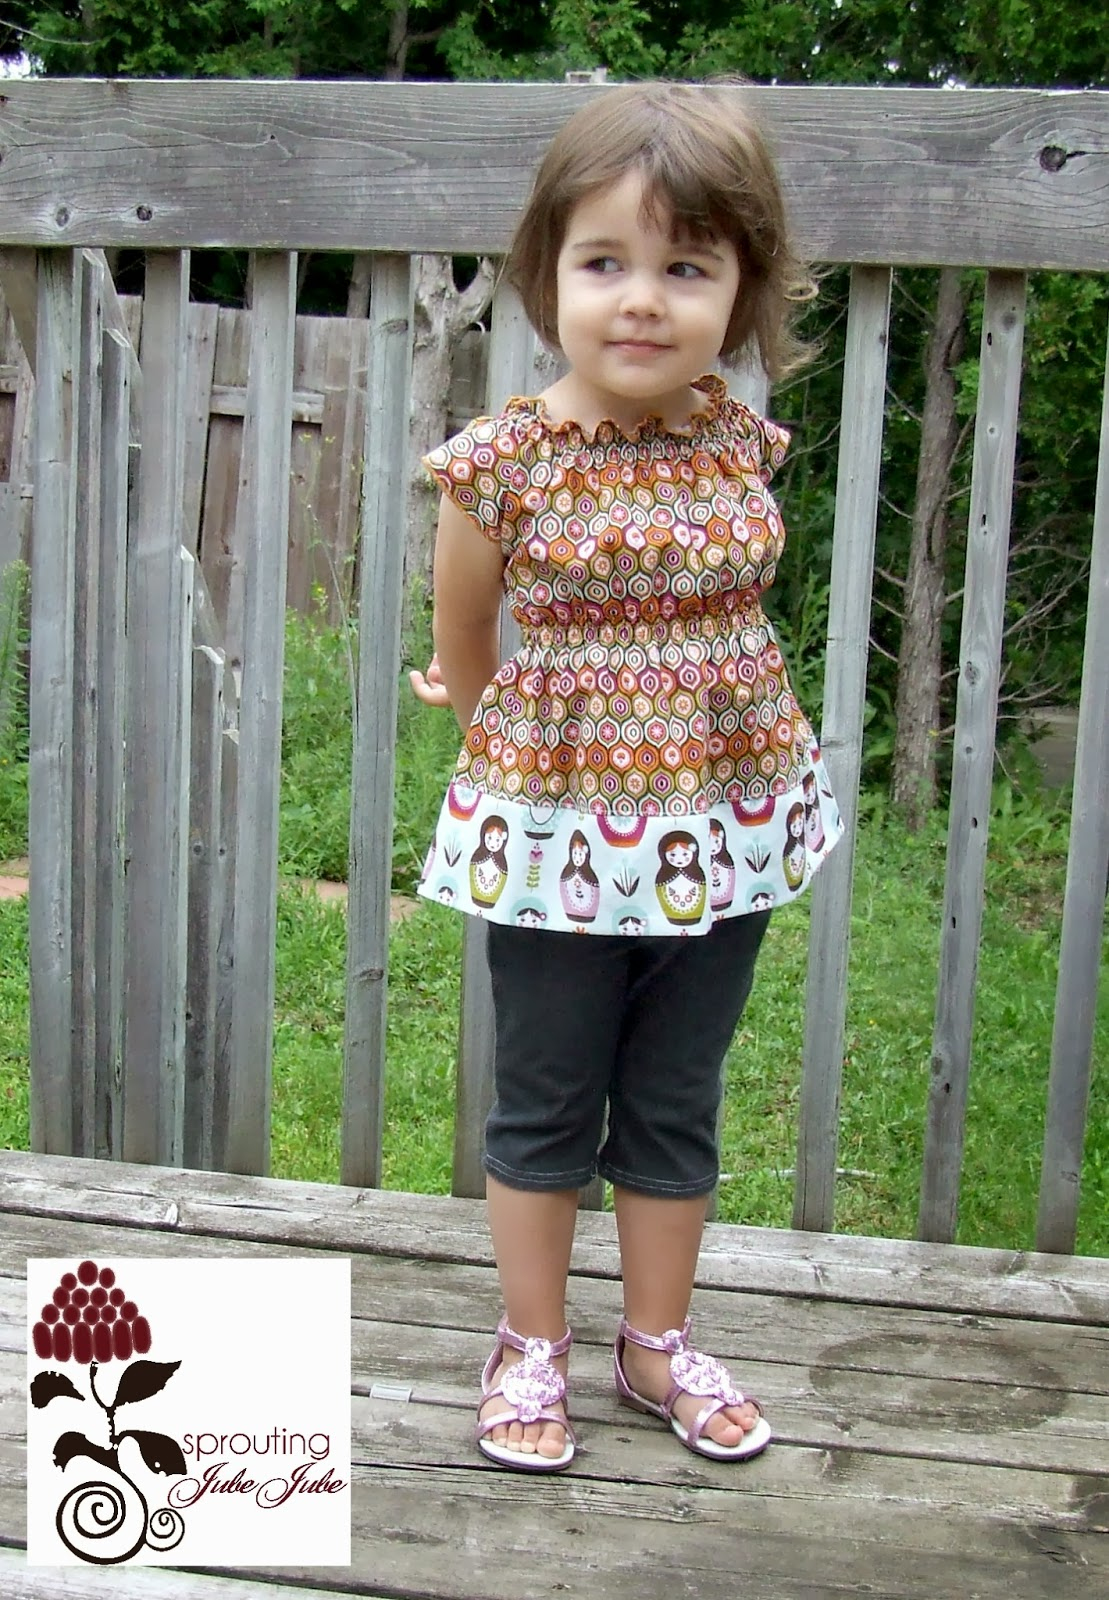 Whimsical Boho Clothing For Kids During the past summer Whimsy